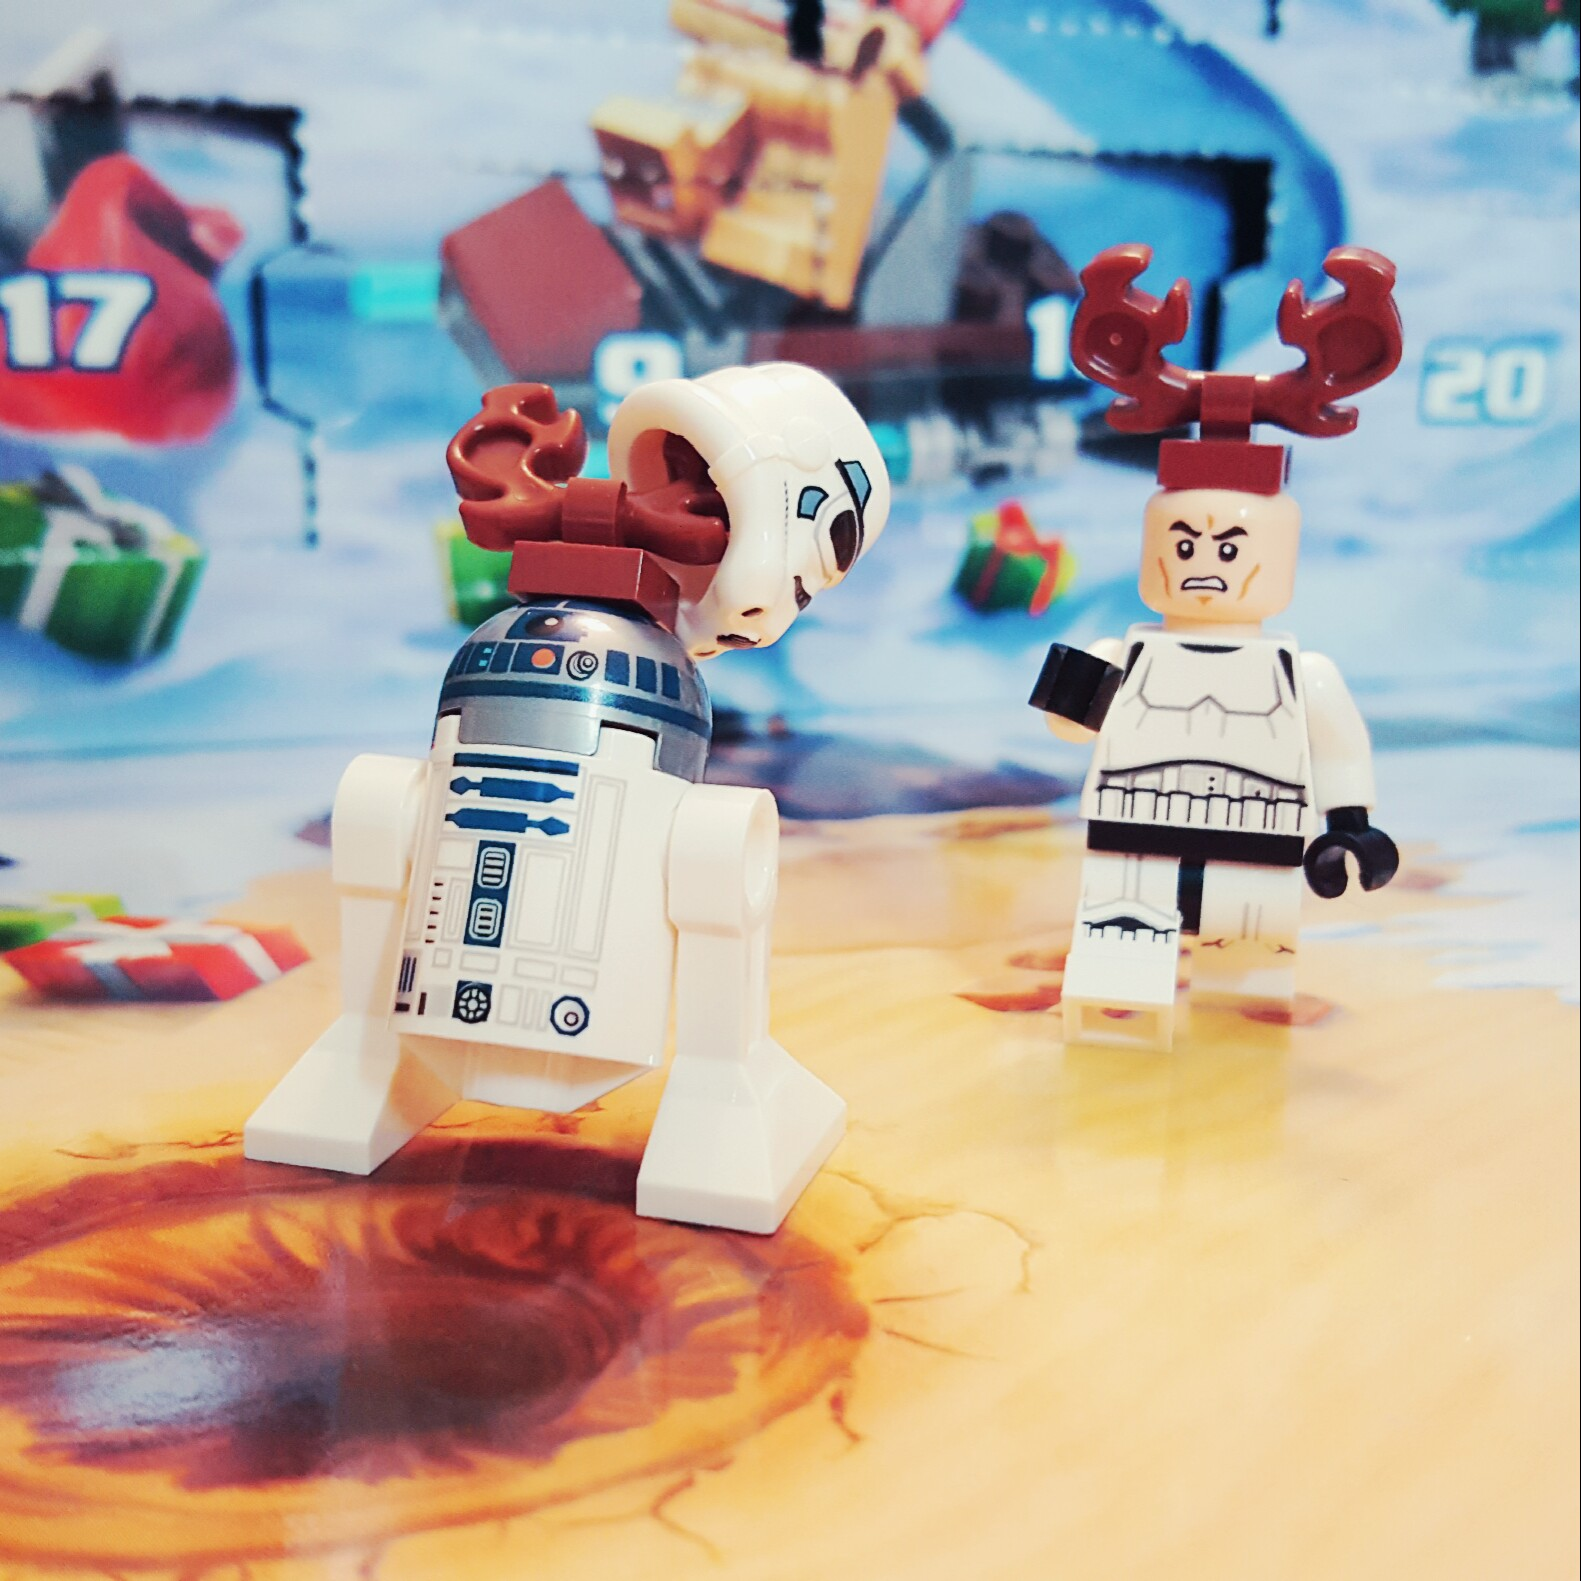 """Come back here with my helmet, droid!"" - Day 22 R2-D2 Reindeer from LEGO Star Wars Advent Calendar"